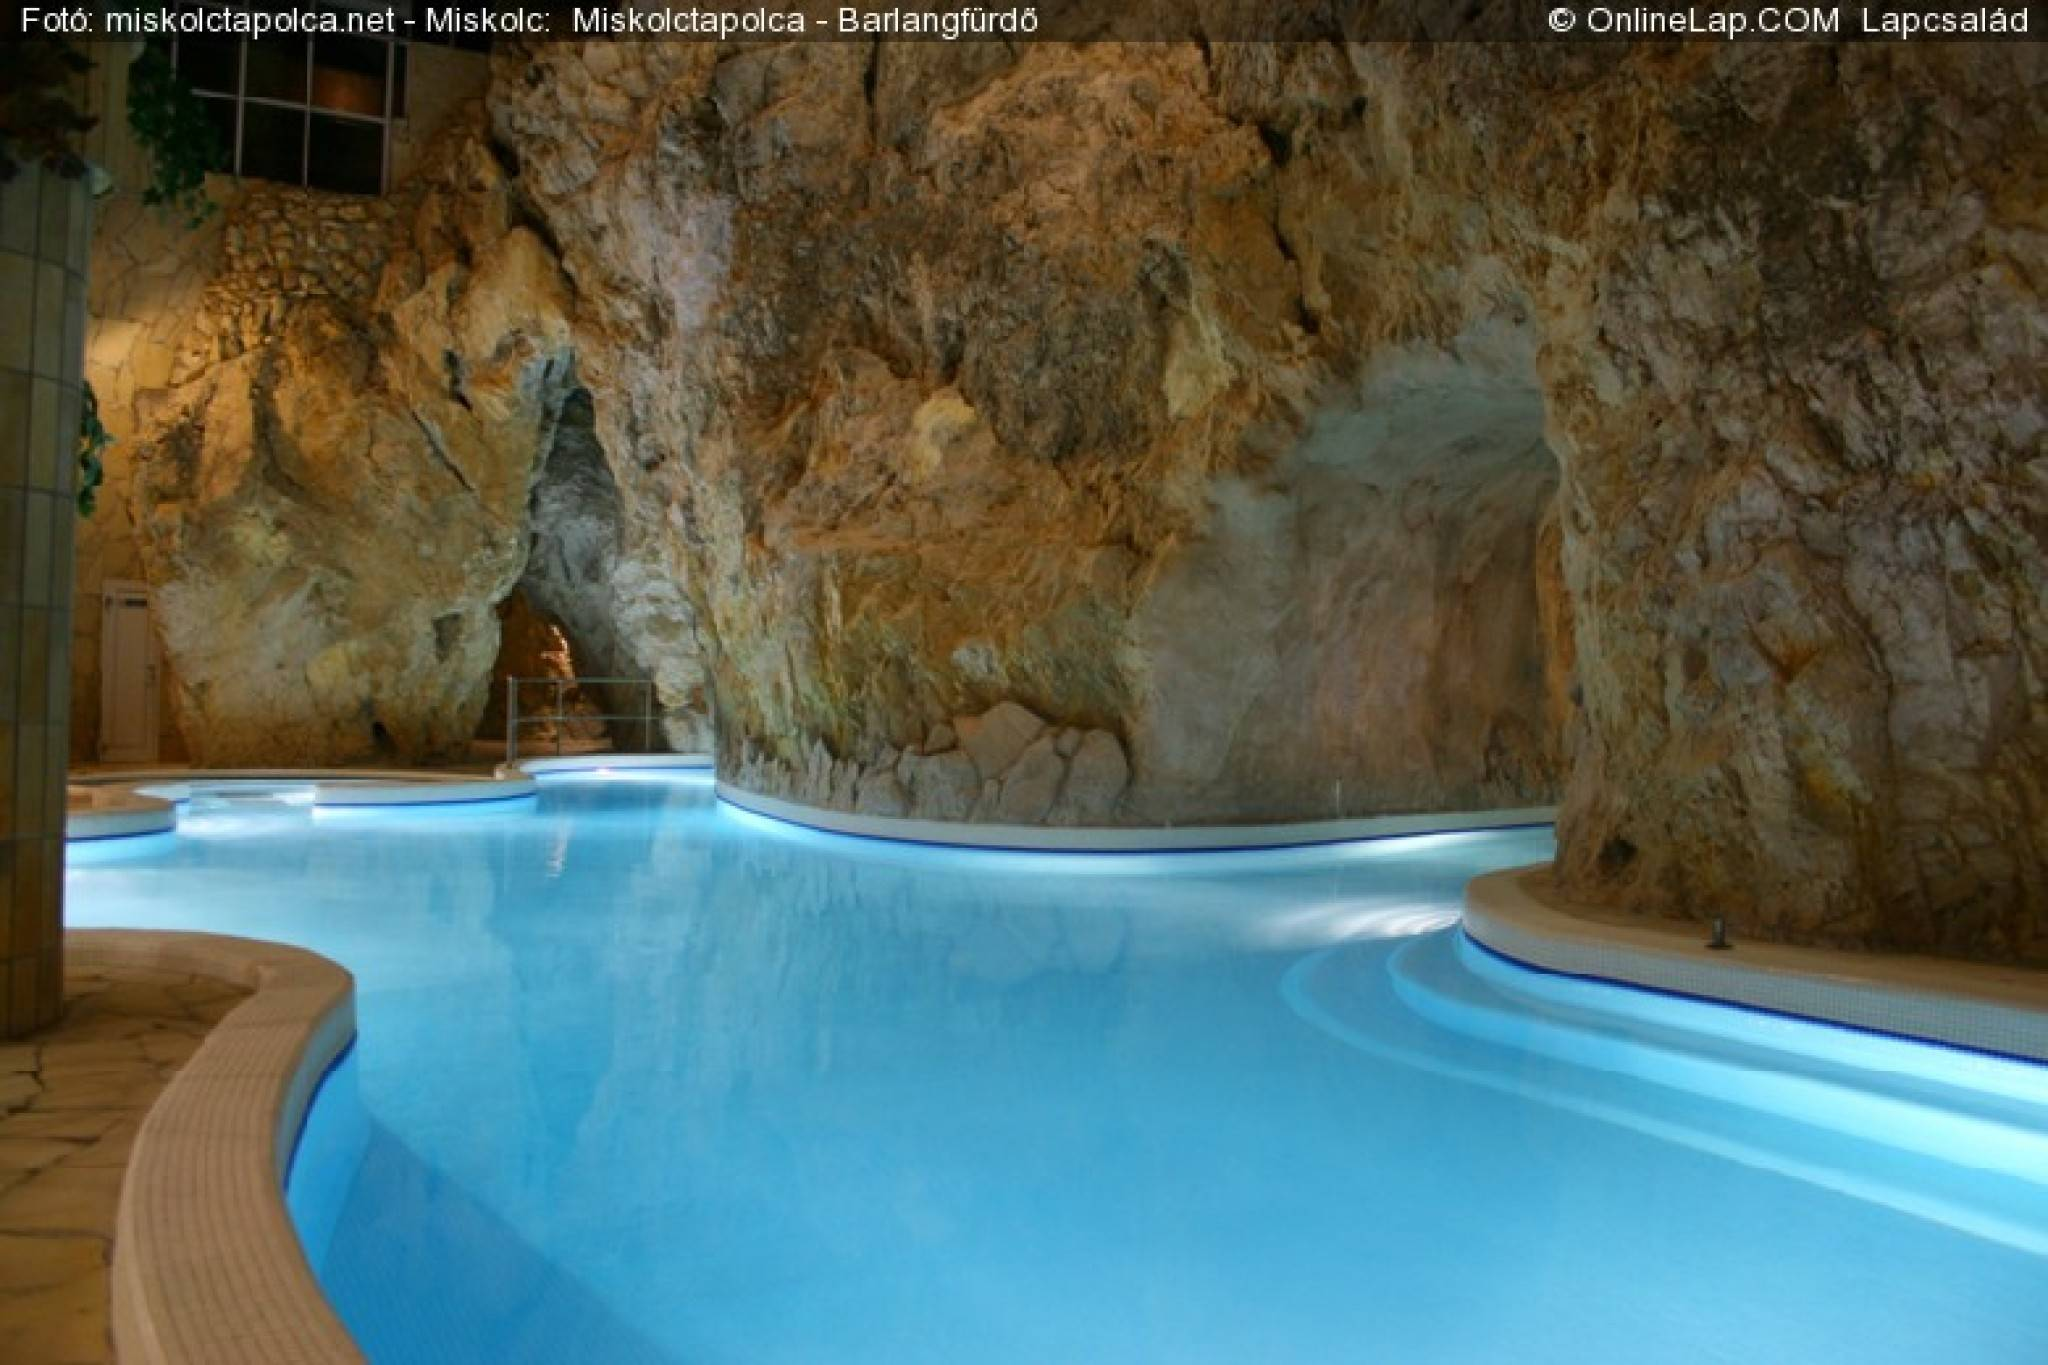 Miskolctapolca Hungary  city photo : We offer tickets to the Barlangfürdő cavebath to our guest at ...